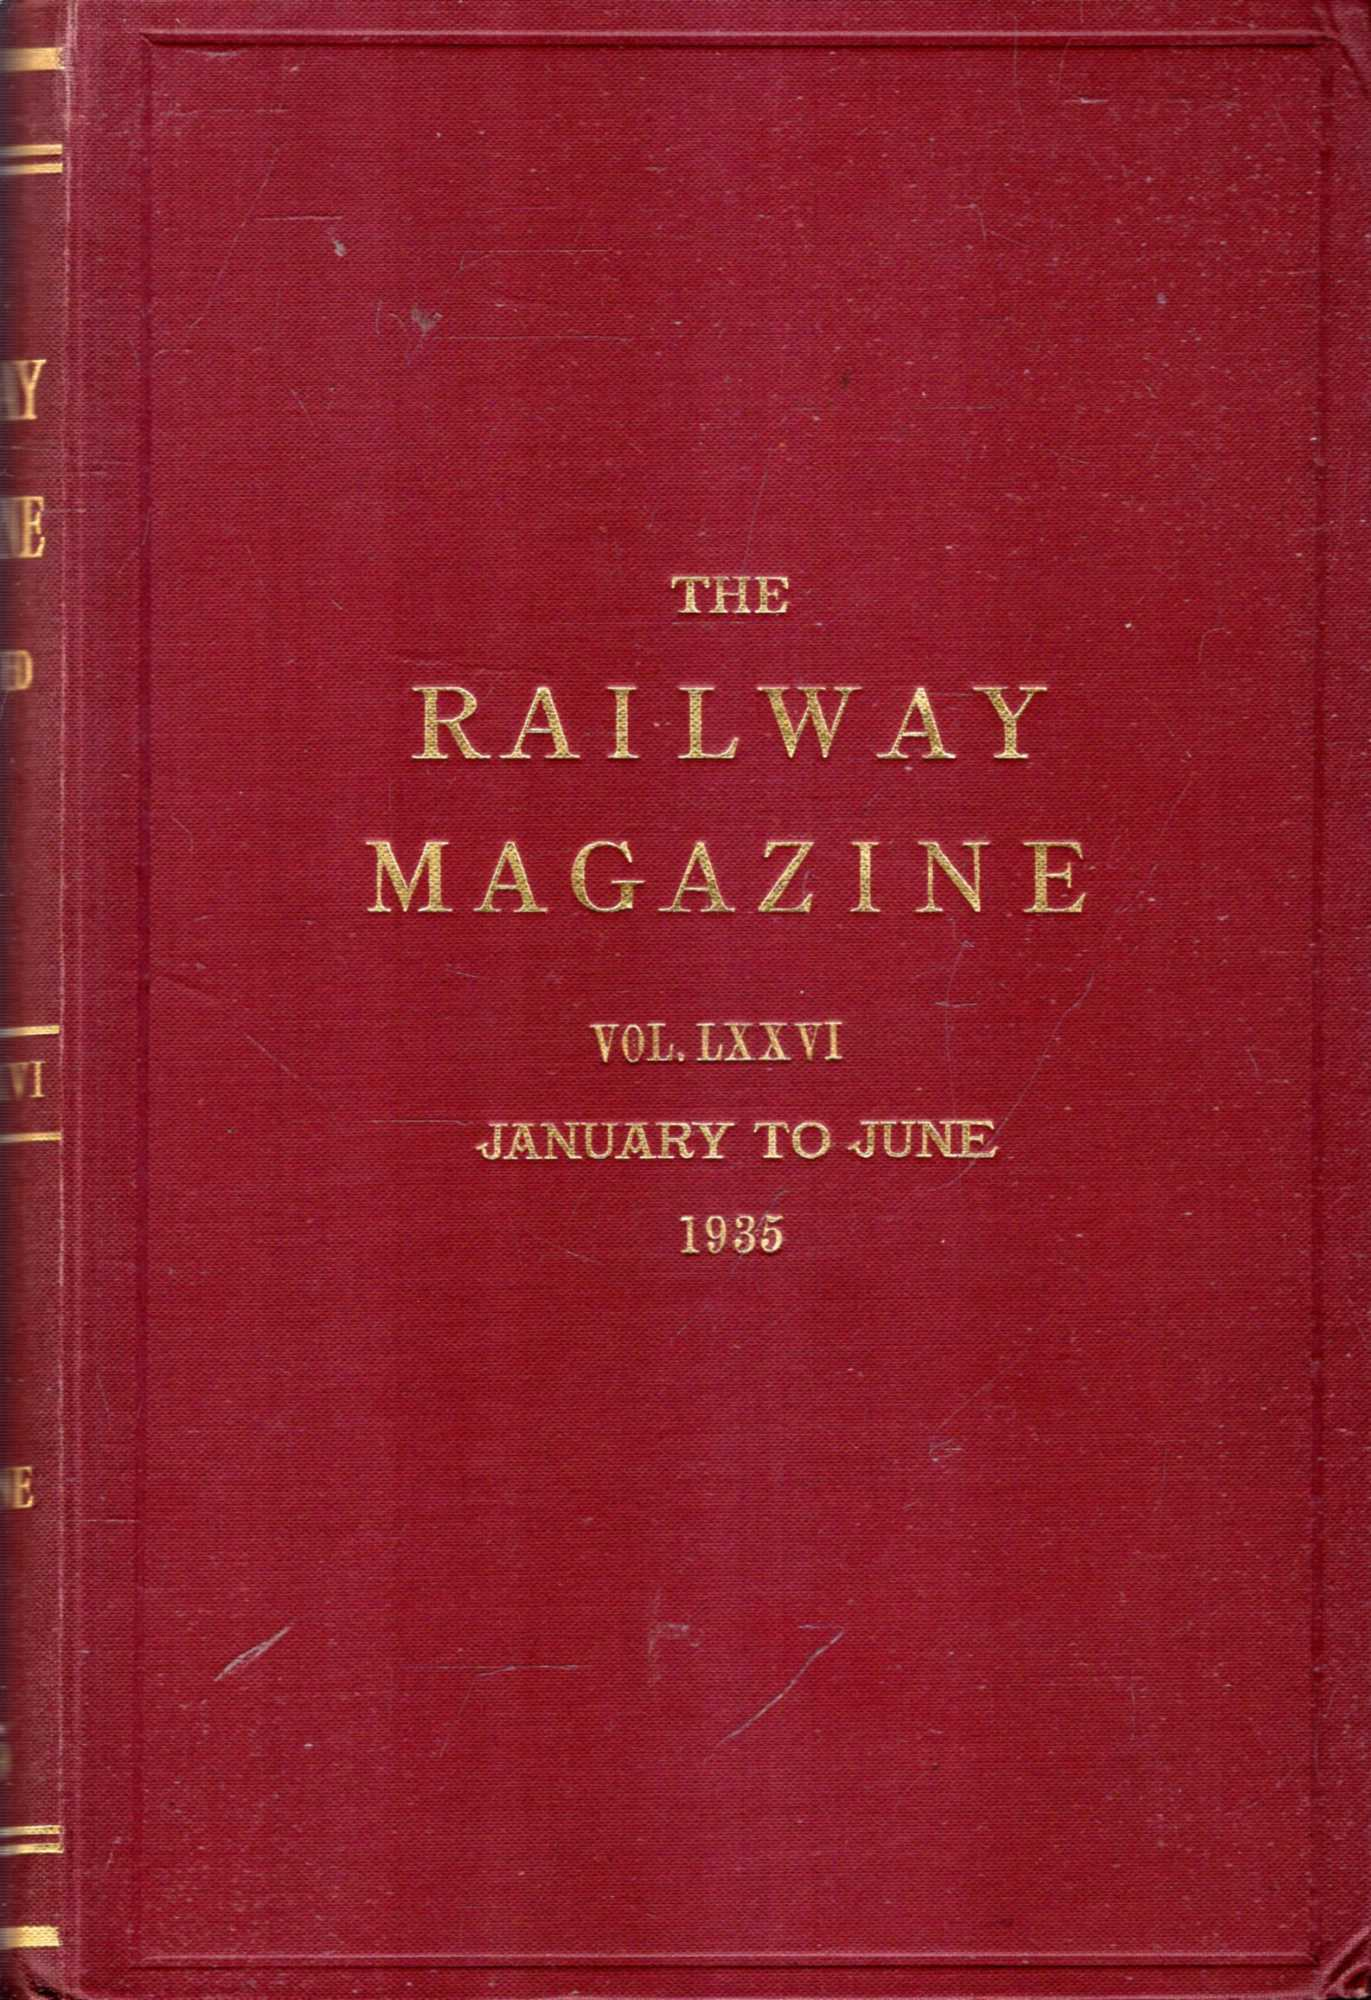 Image for The Railway Magazine volume LXXVI (76) January to June 1935